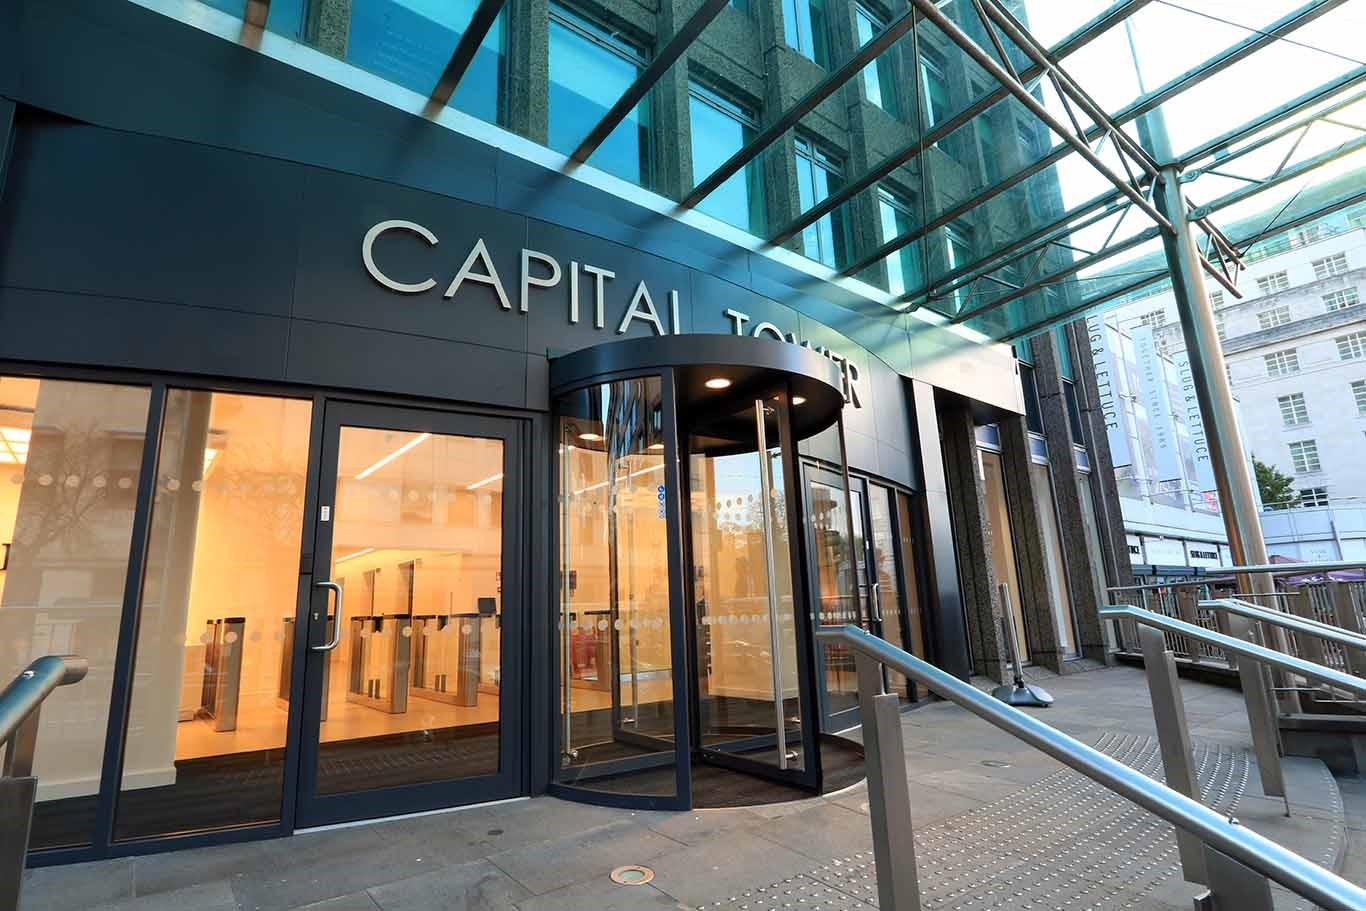 Chadwick Business Centres Limited - Capital Tower Cardiff - Greyfriars Road, CF10 - Cardiff